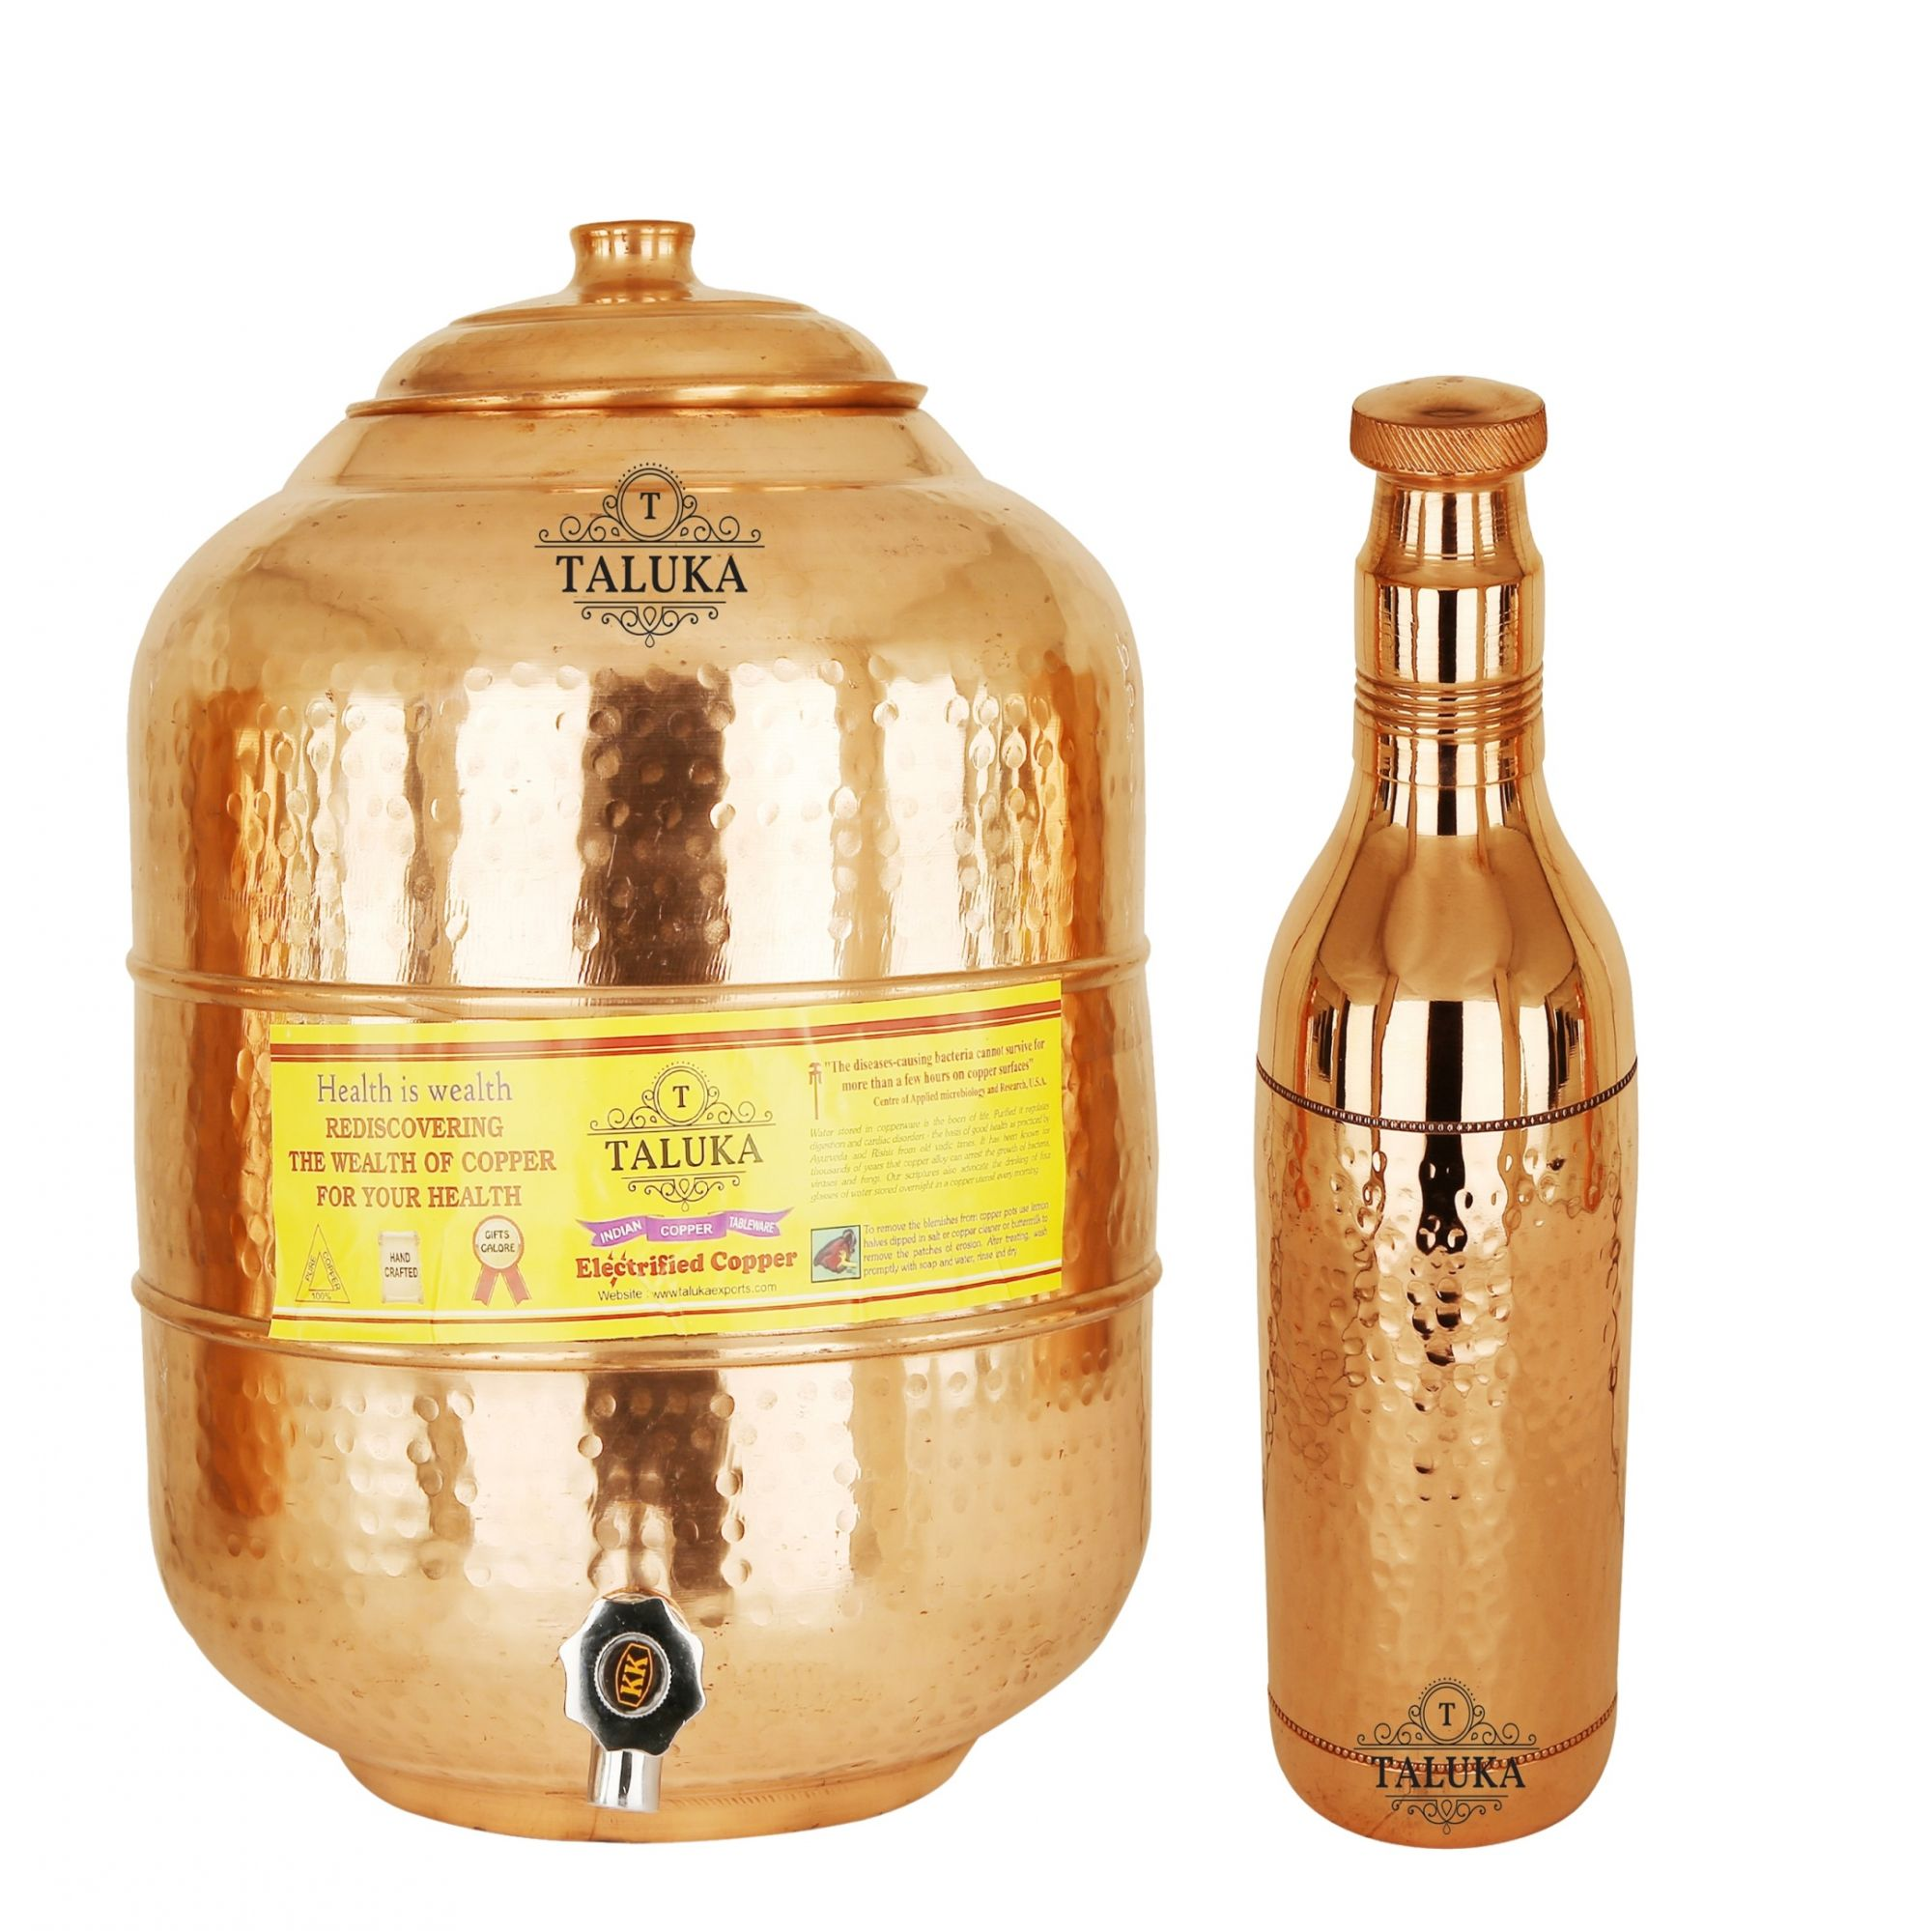 Taluka Handmade Copper Water Pot Tank 6 Liter 1 Hammer Water Bottle 1.7 Liter Storage